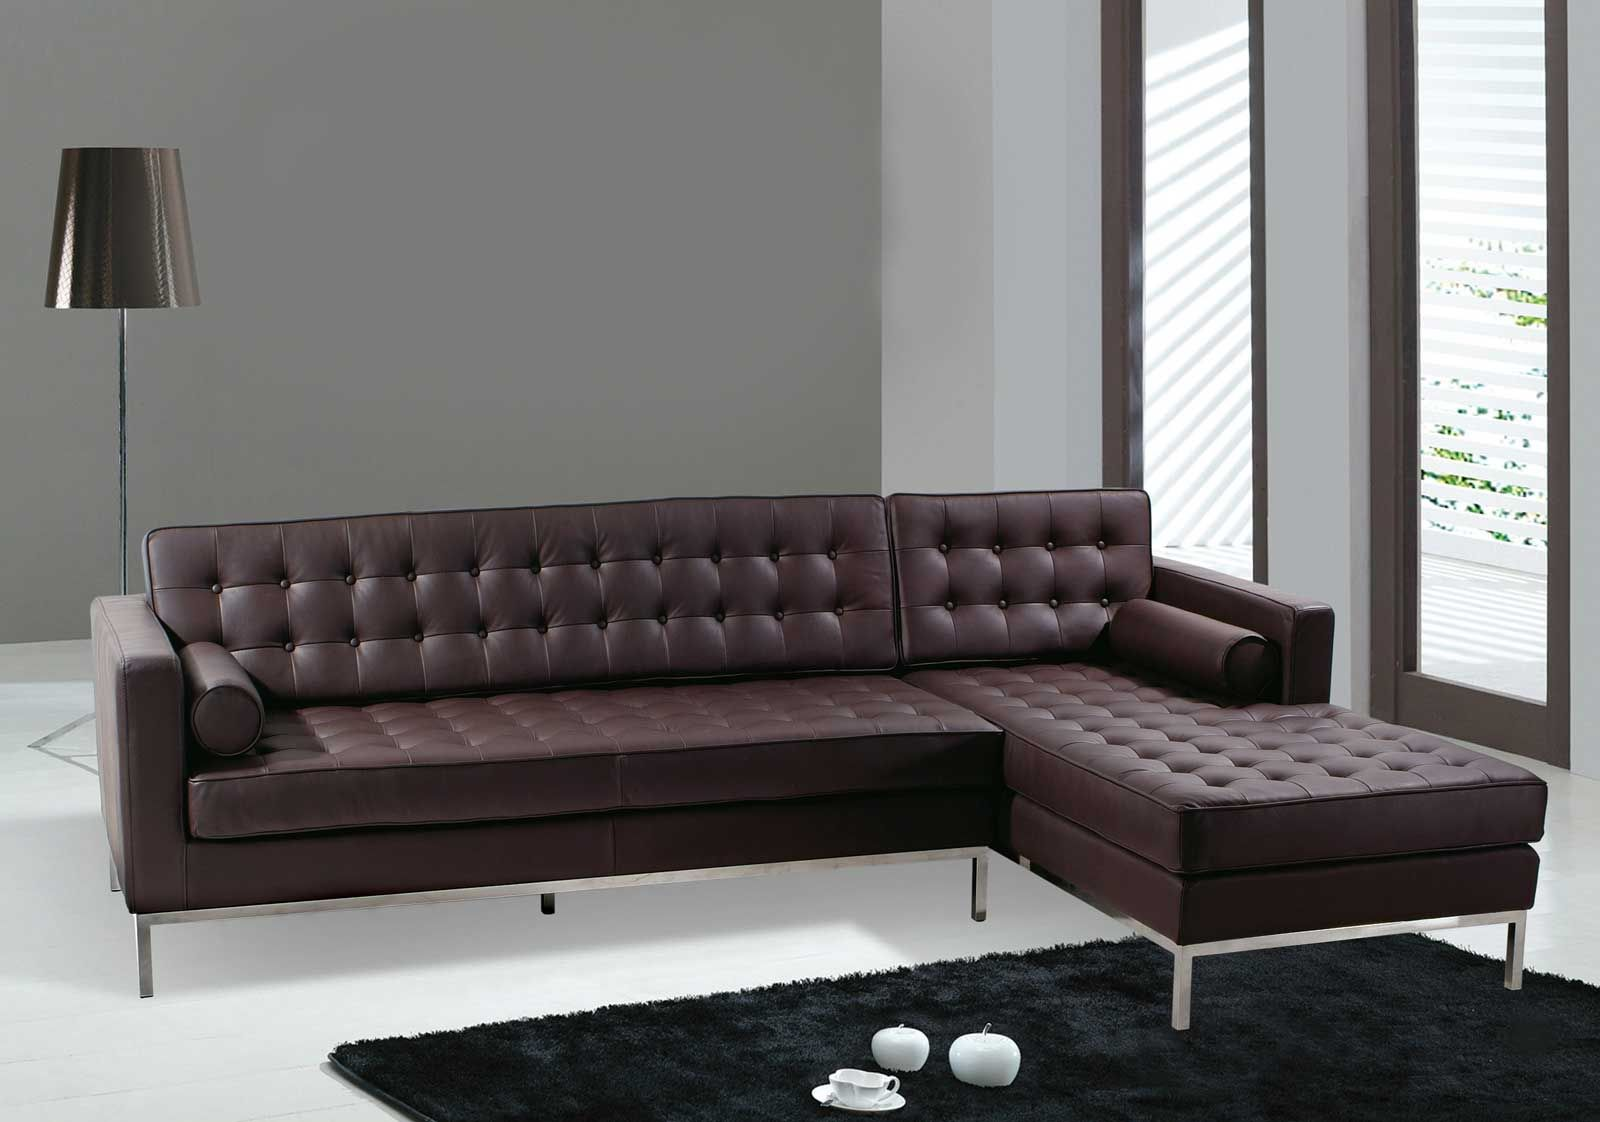 Modern elegant living room has a sofa that is big and beautiful and - Modern Dark Brown Sectional L Shaped Sofa Design Ideas For Living Room Furniture With Modern Metal